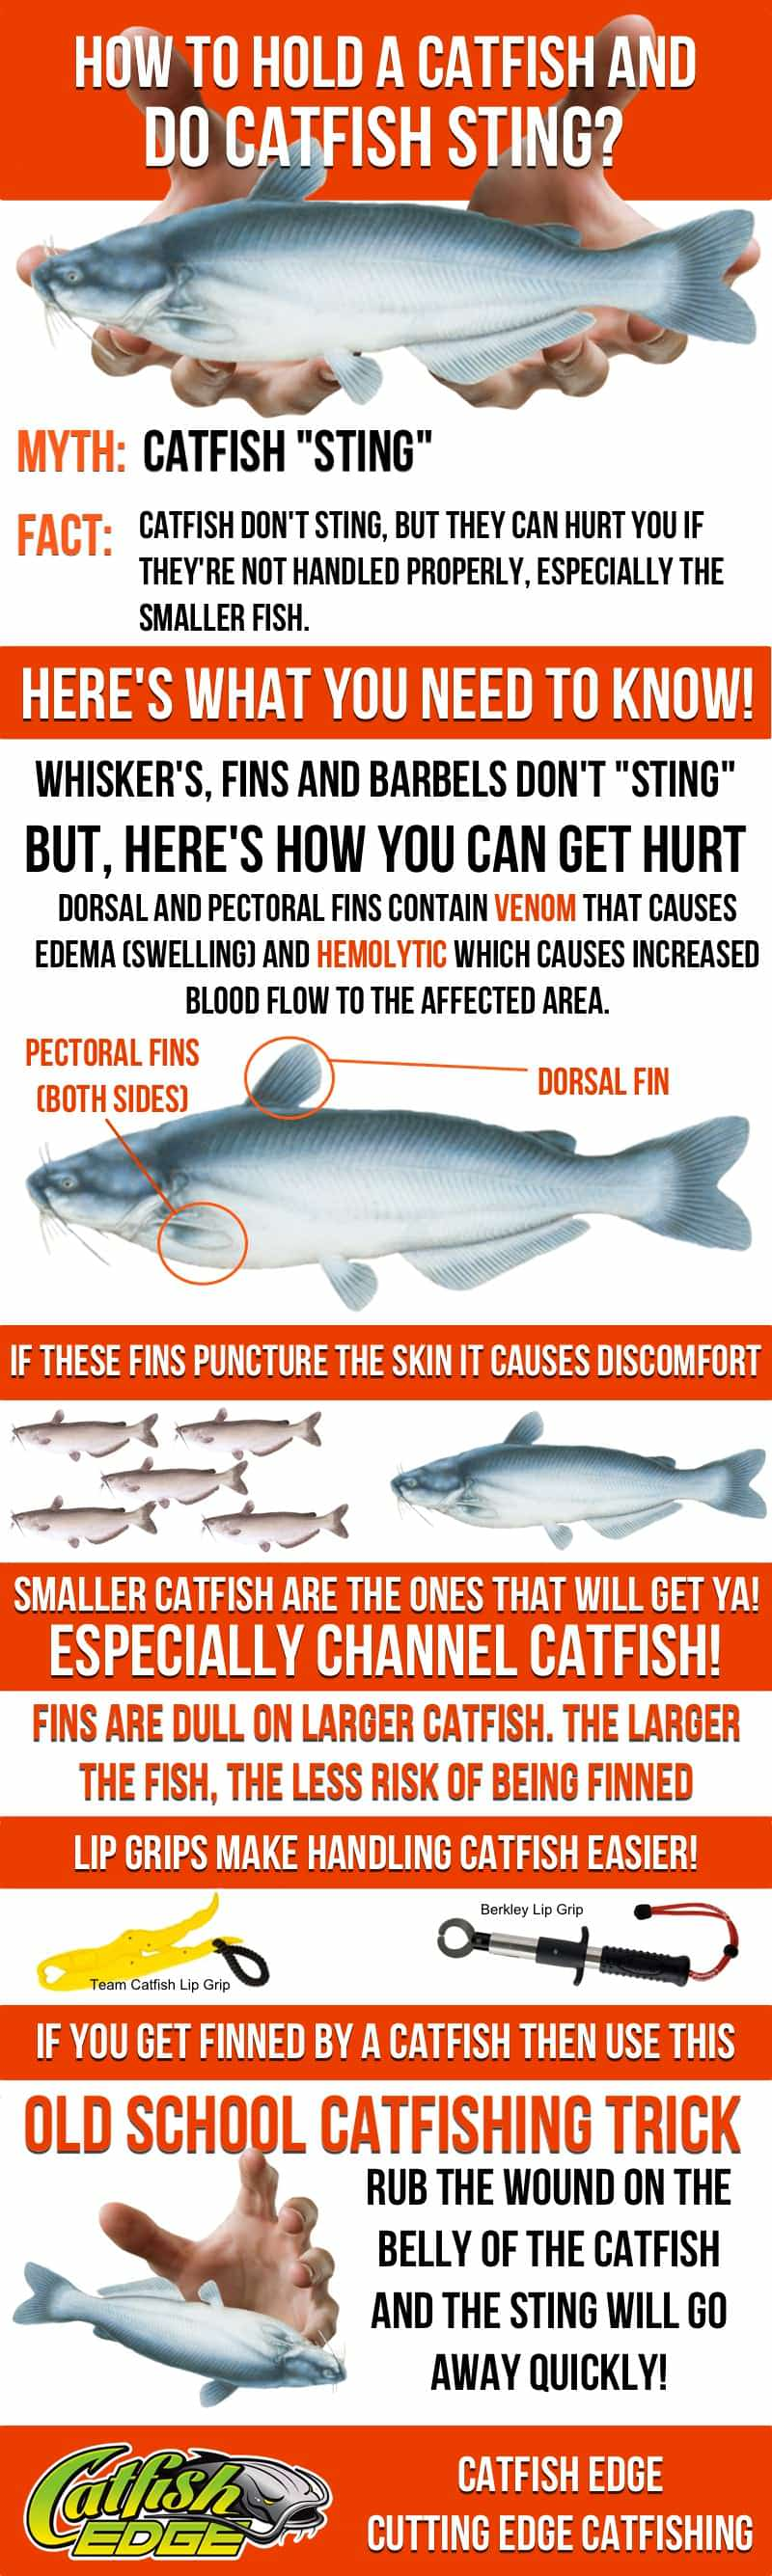 How To Hold a Catfish and Do Catfish